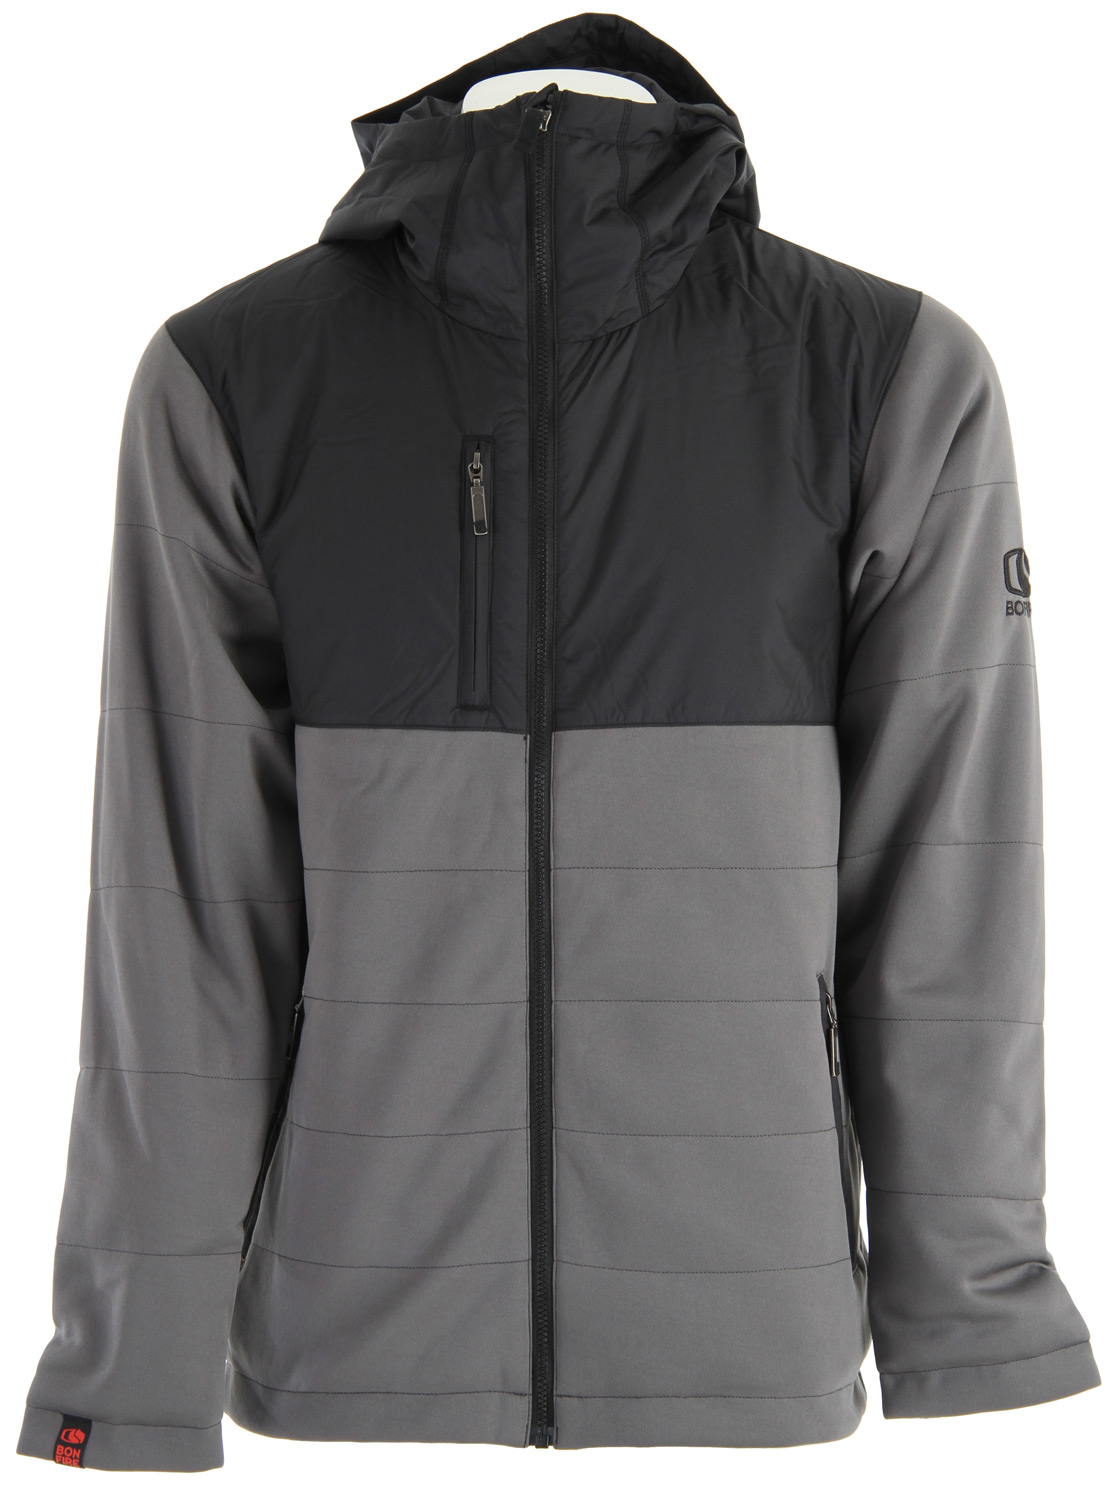 The Bonfire Steep Fleece Jacket is both simple and highly functional. Insulated construction of Taffeta hood and upper, combined with our time and terrain tested Optic Fleece body and sleeves.Key Features of the Bonfire Steep Fleece Jacket: Water resistant Taffeta shoulders 40g insulation Thumb loops Chest pocket audio exit - $69.95